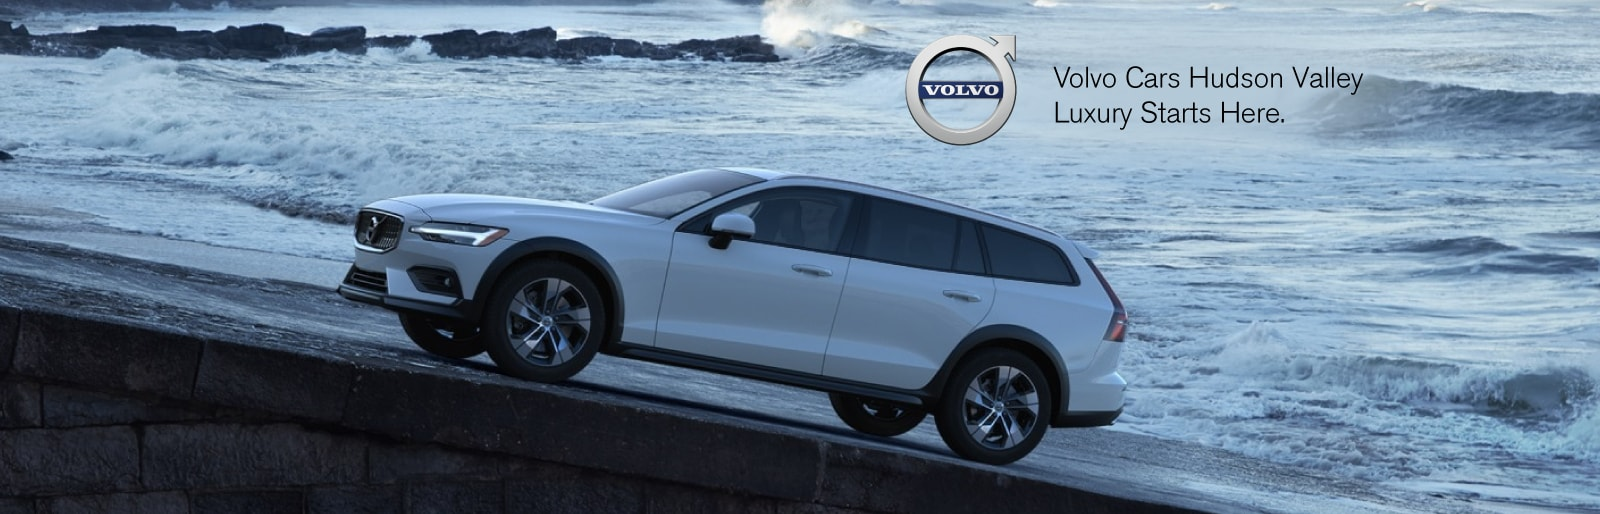 Volvo V60 lease deal image